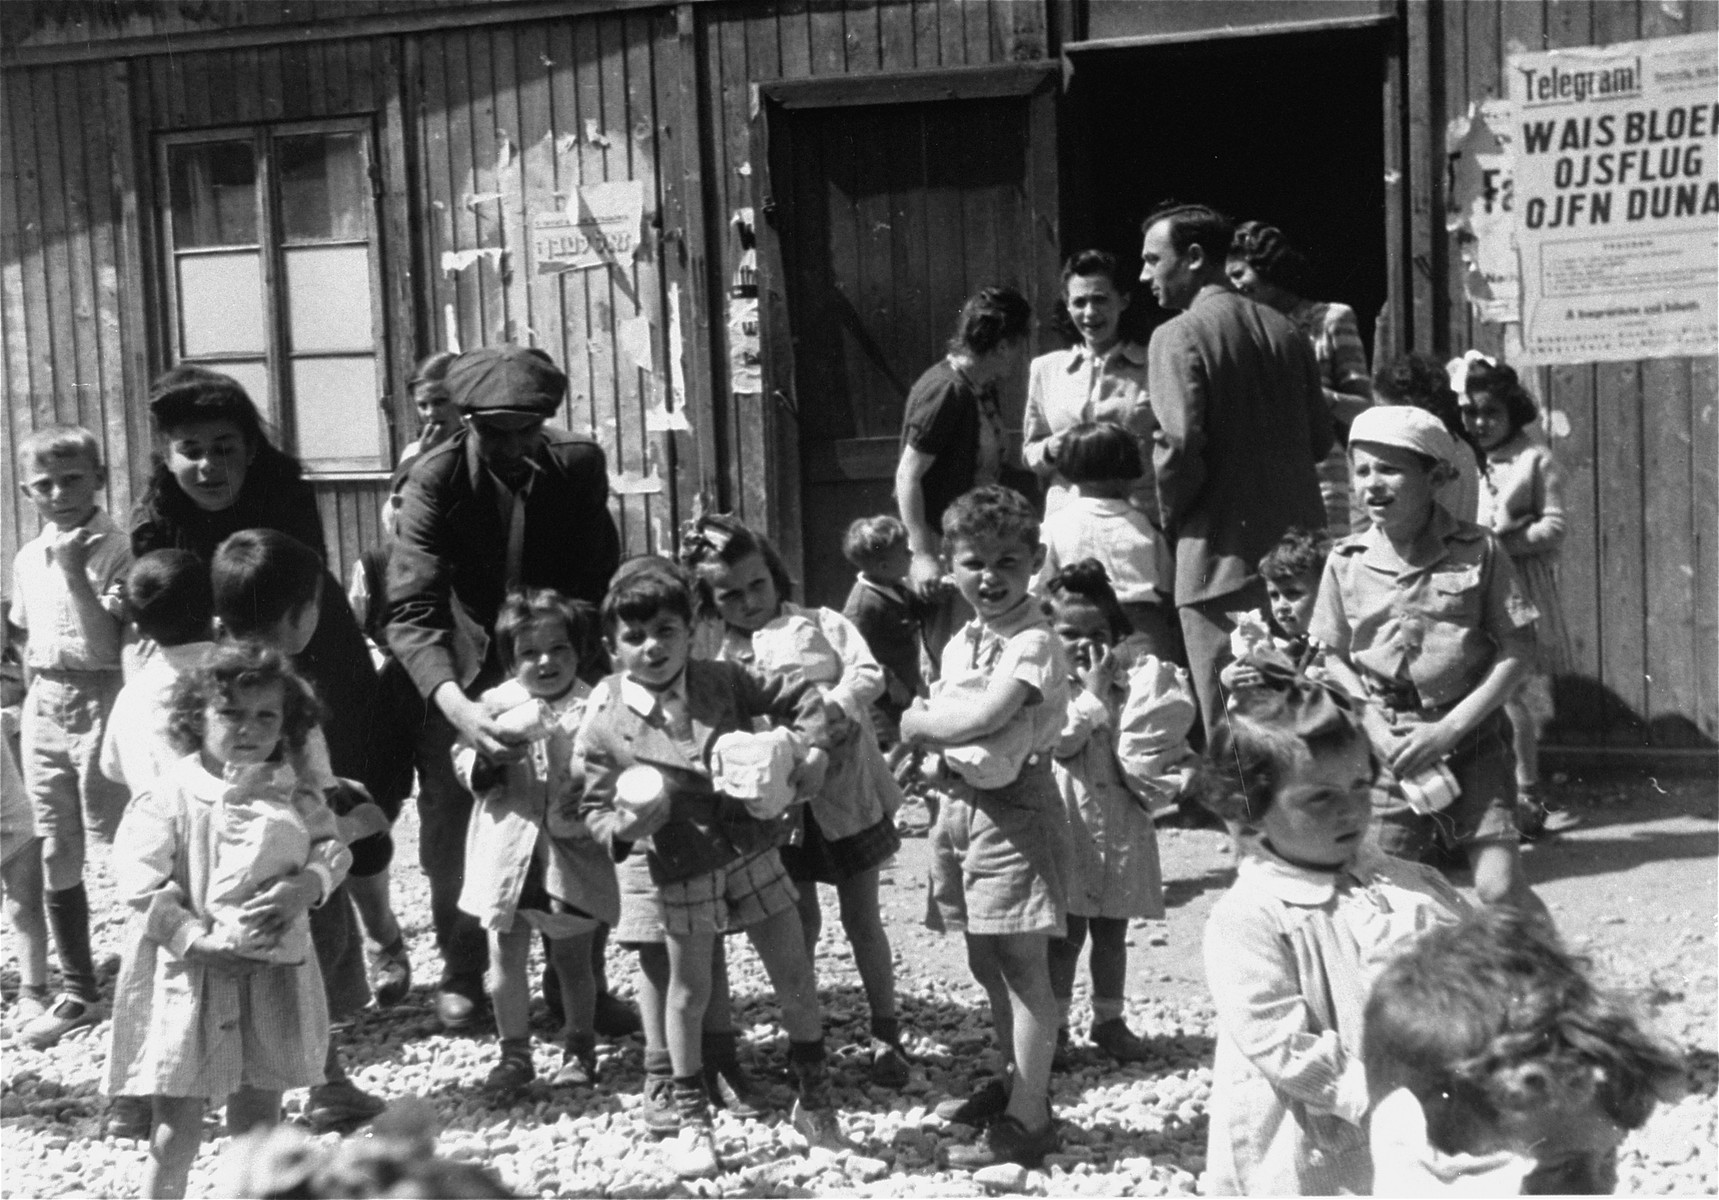 Children stand in front of the food distribution building in Bindermichl DP camp.